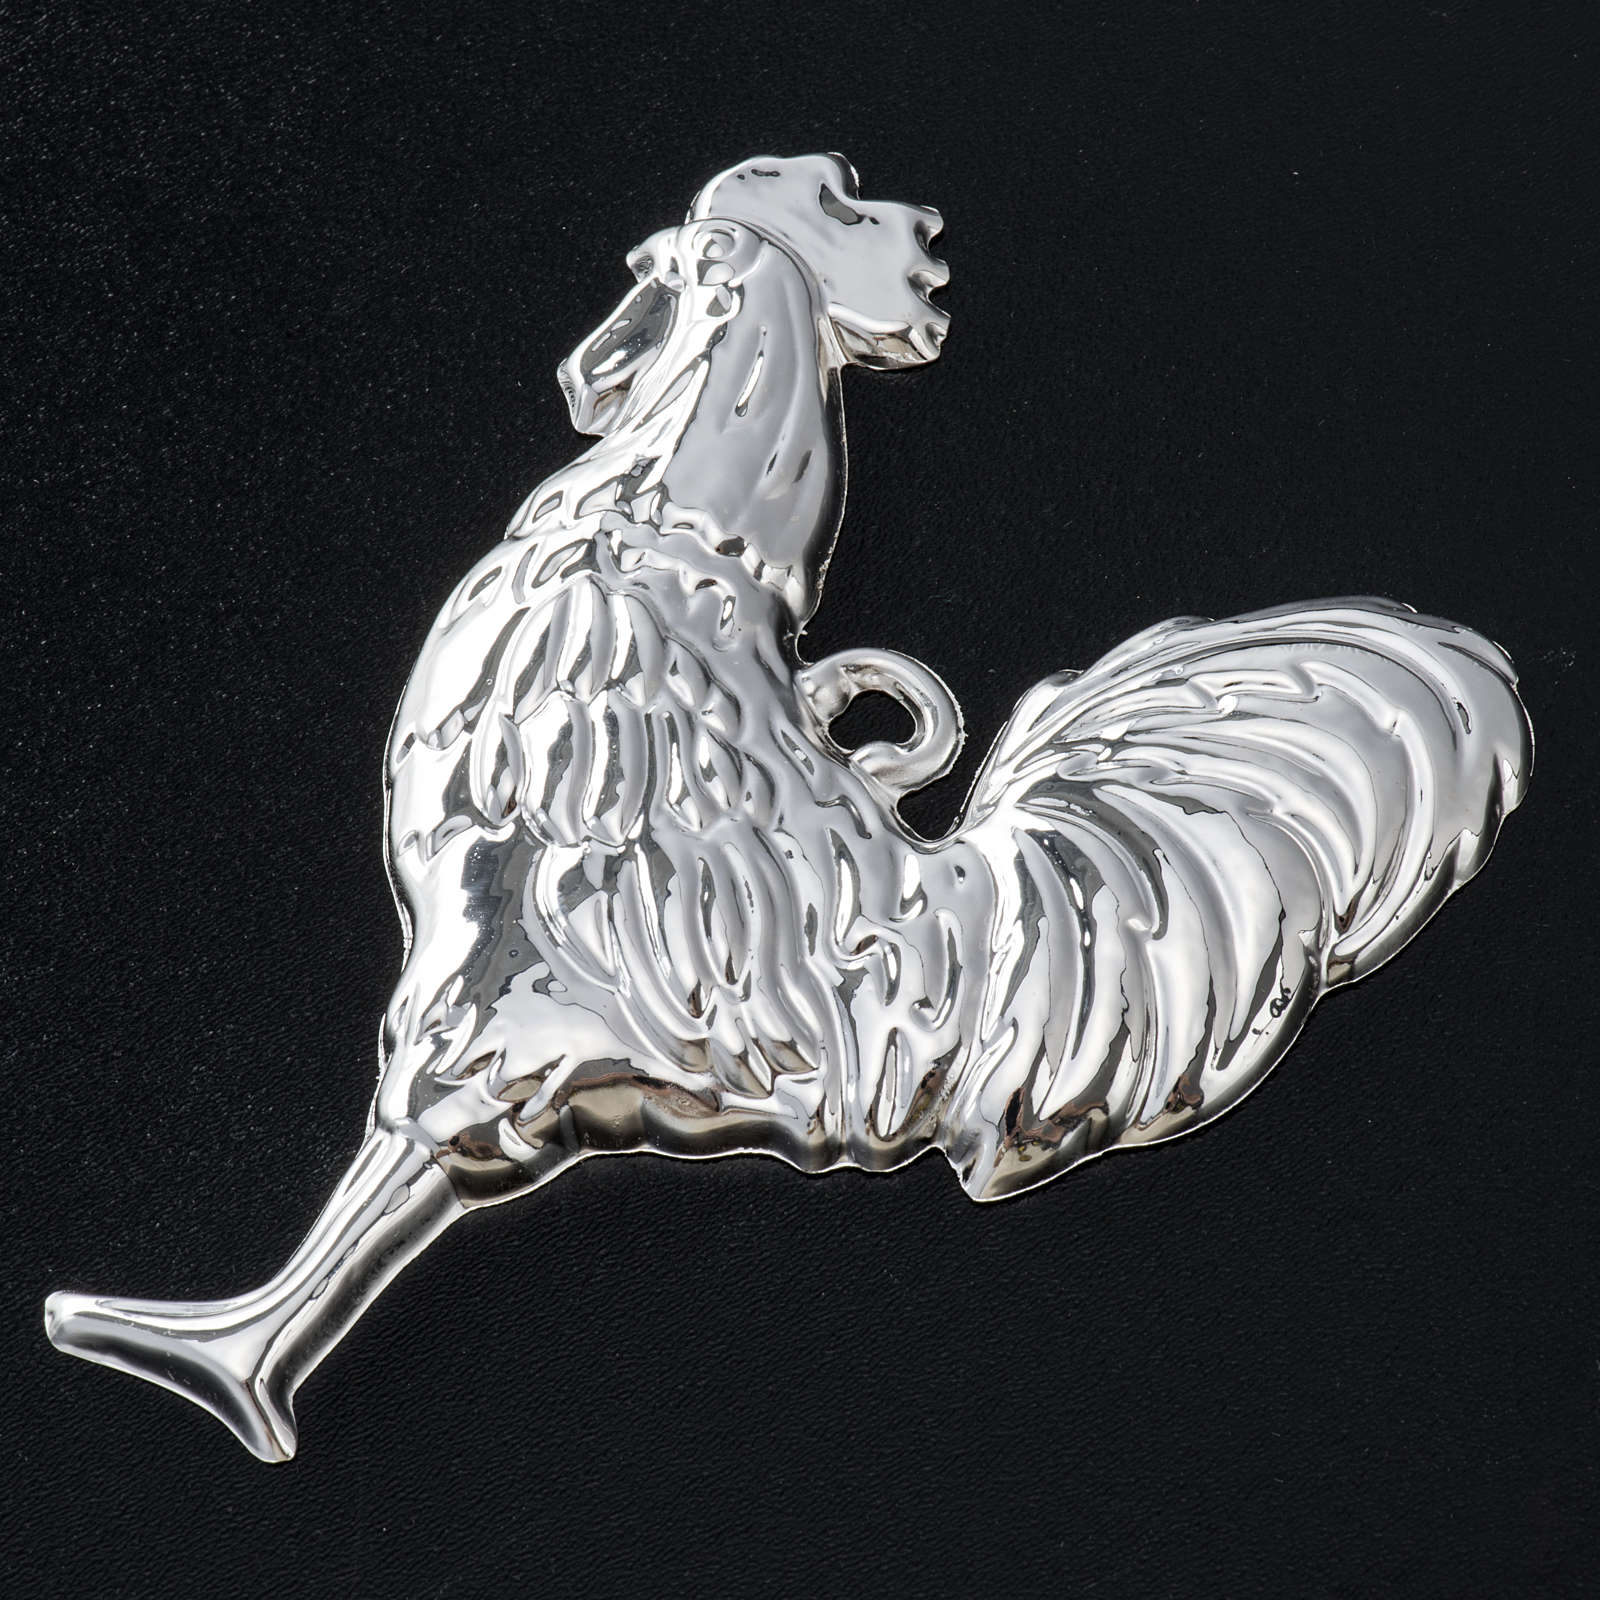 Ex-voto, cock in sterling silver or metal, 10 x 8cm 3